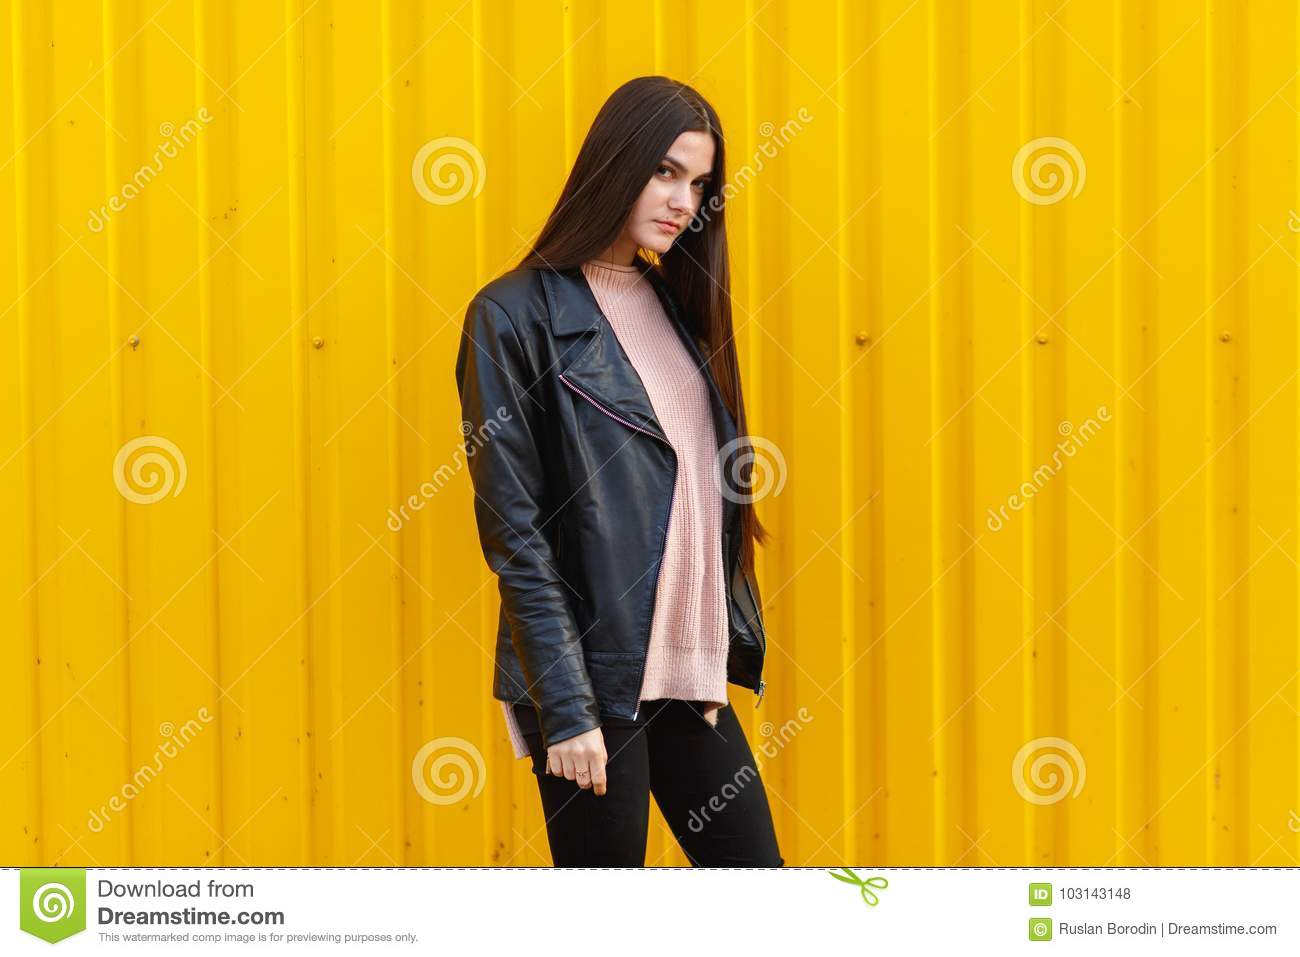 22d8a27e8 Lady Posing On Yellow Building Background Stock Photo - Image of ...